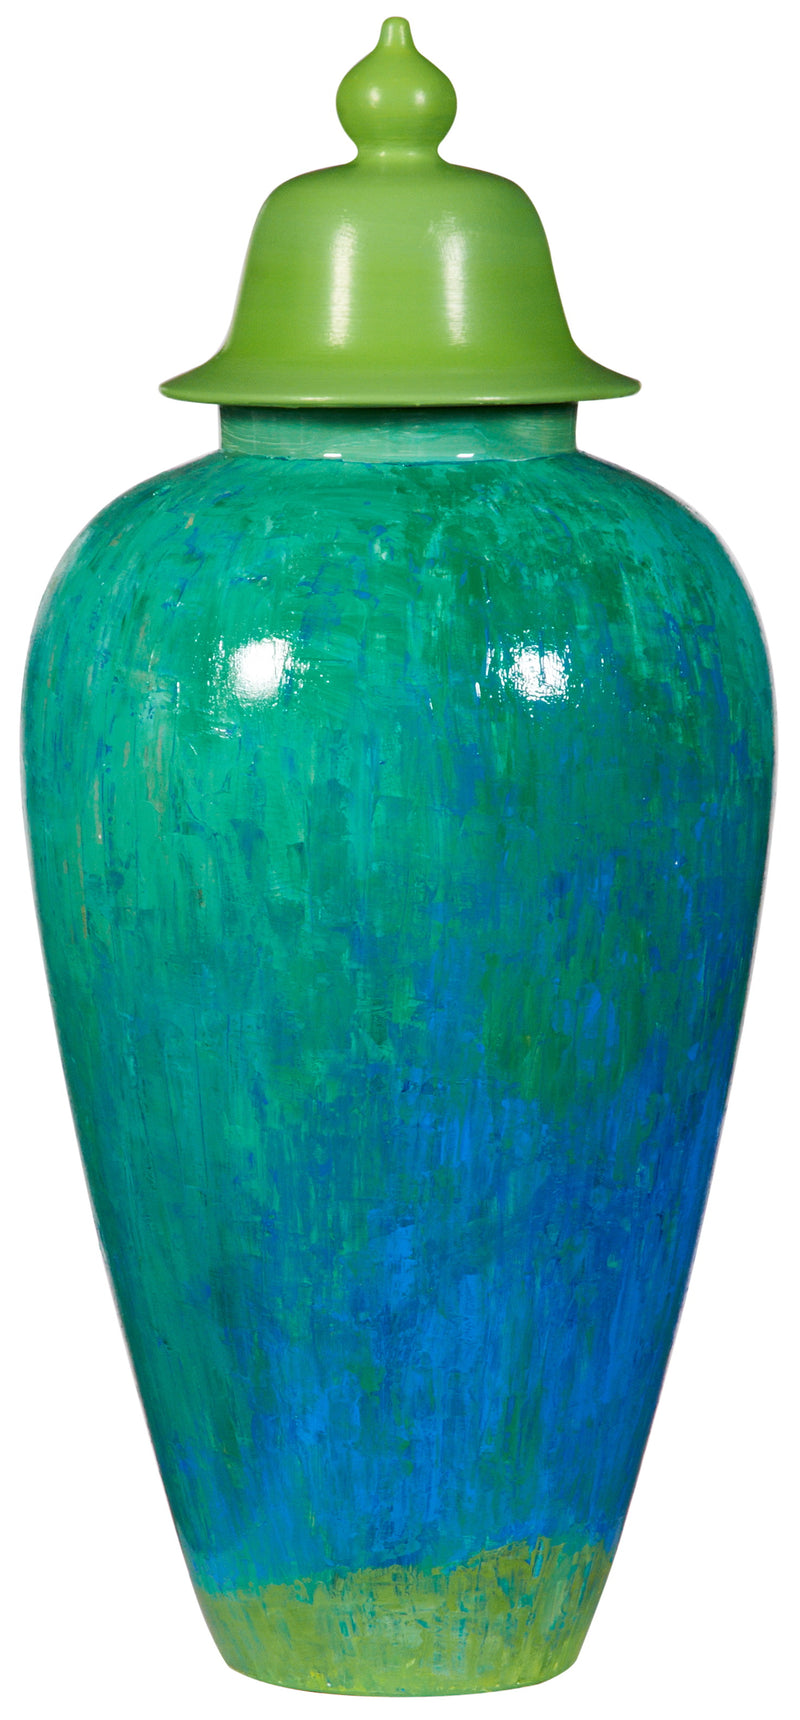 Green Blue Ceramic Hand Painted Jar with Lid